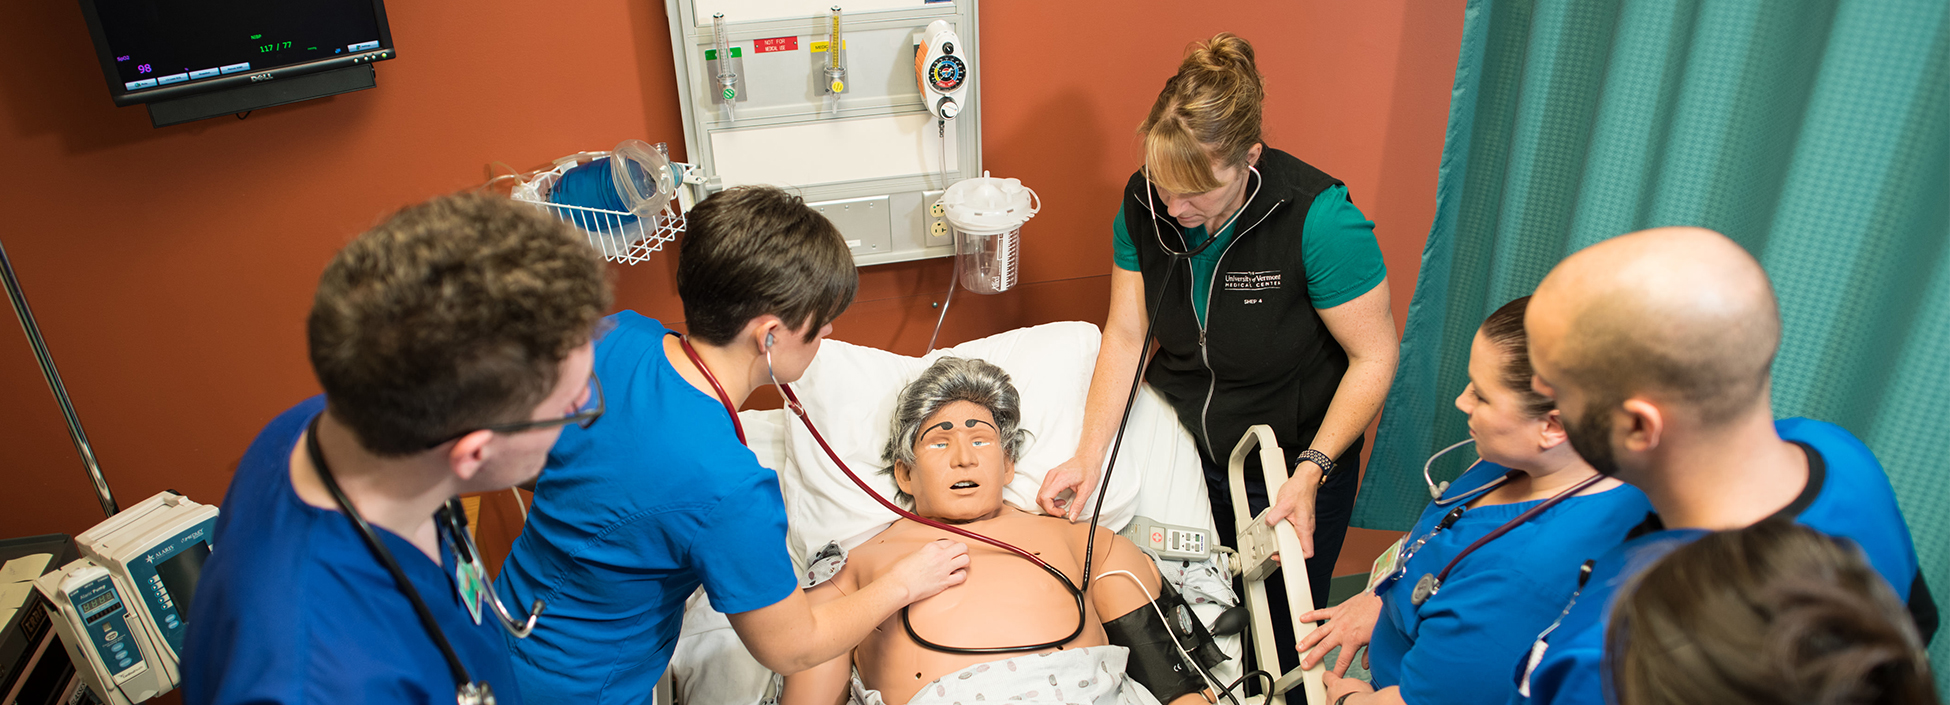 Vermont Tech students practice their skills on the simulation man, nursing, hands on, healthcare